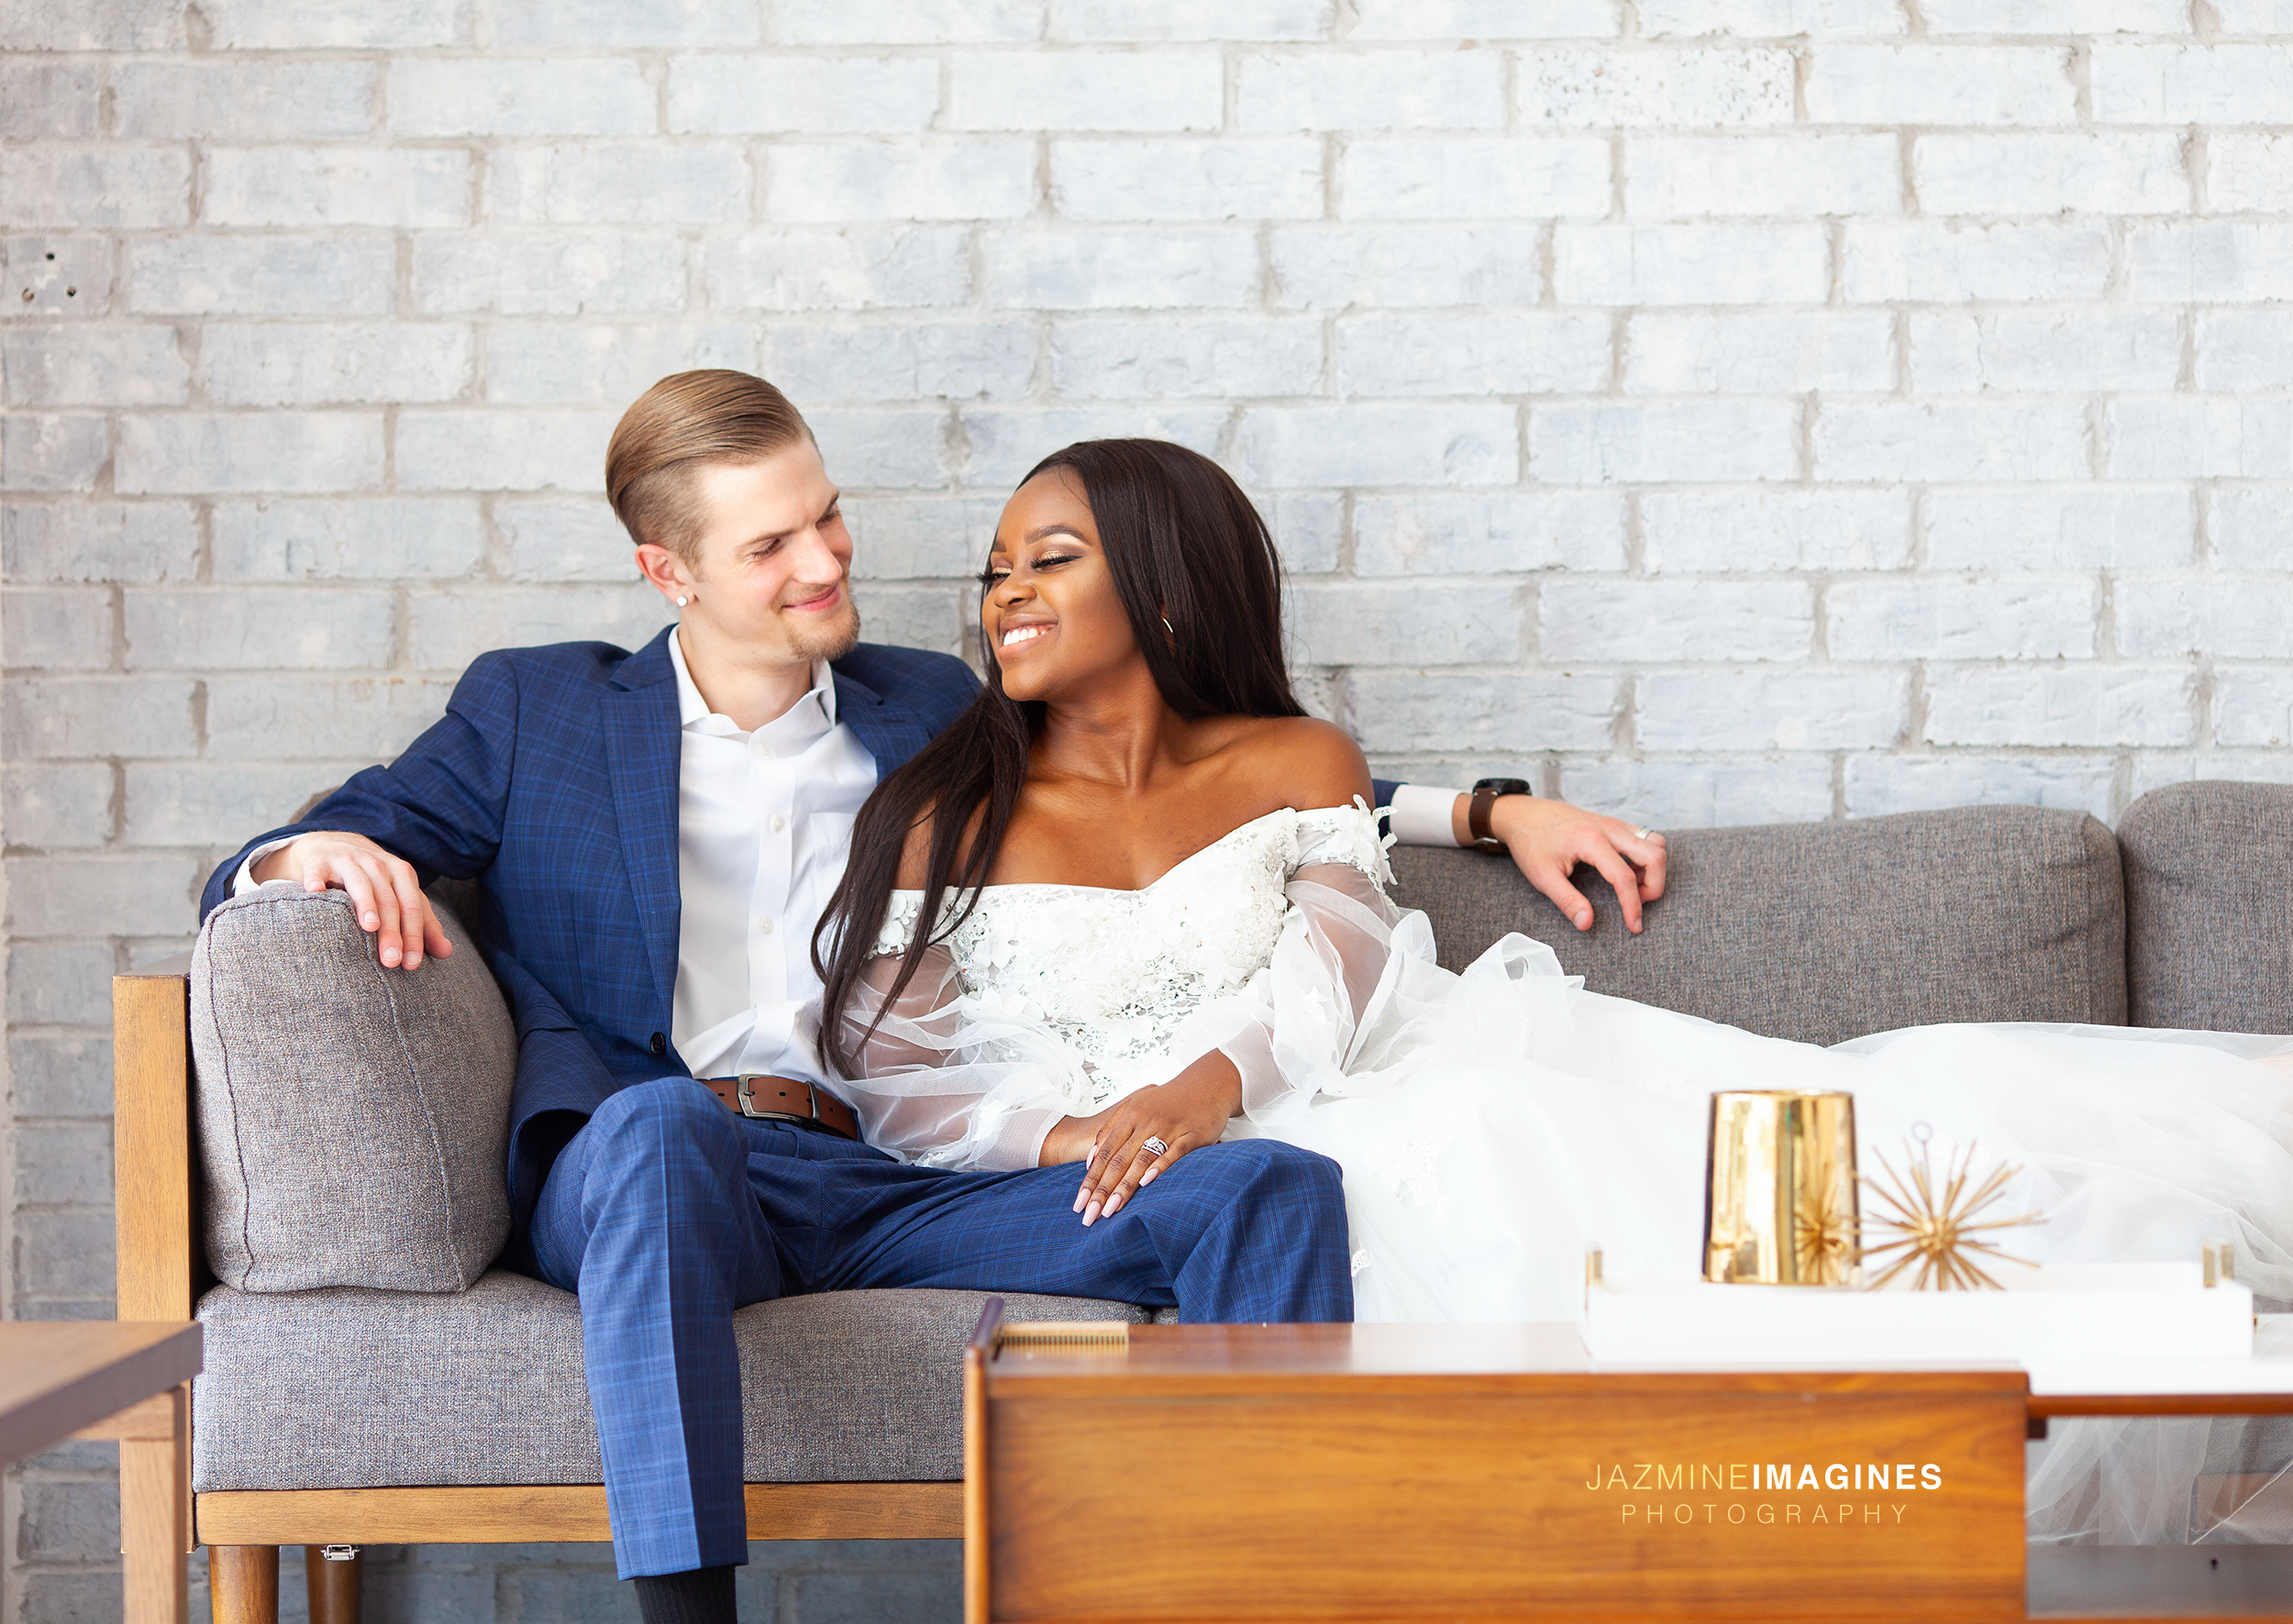 Donut_Elopement_Styled_Photoshoot.png